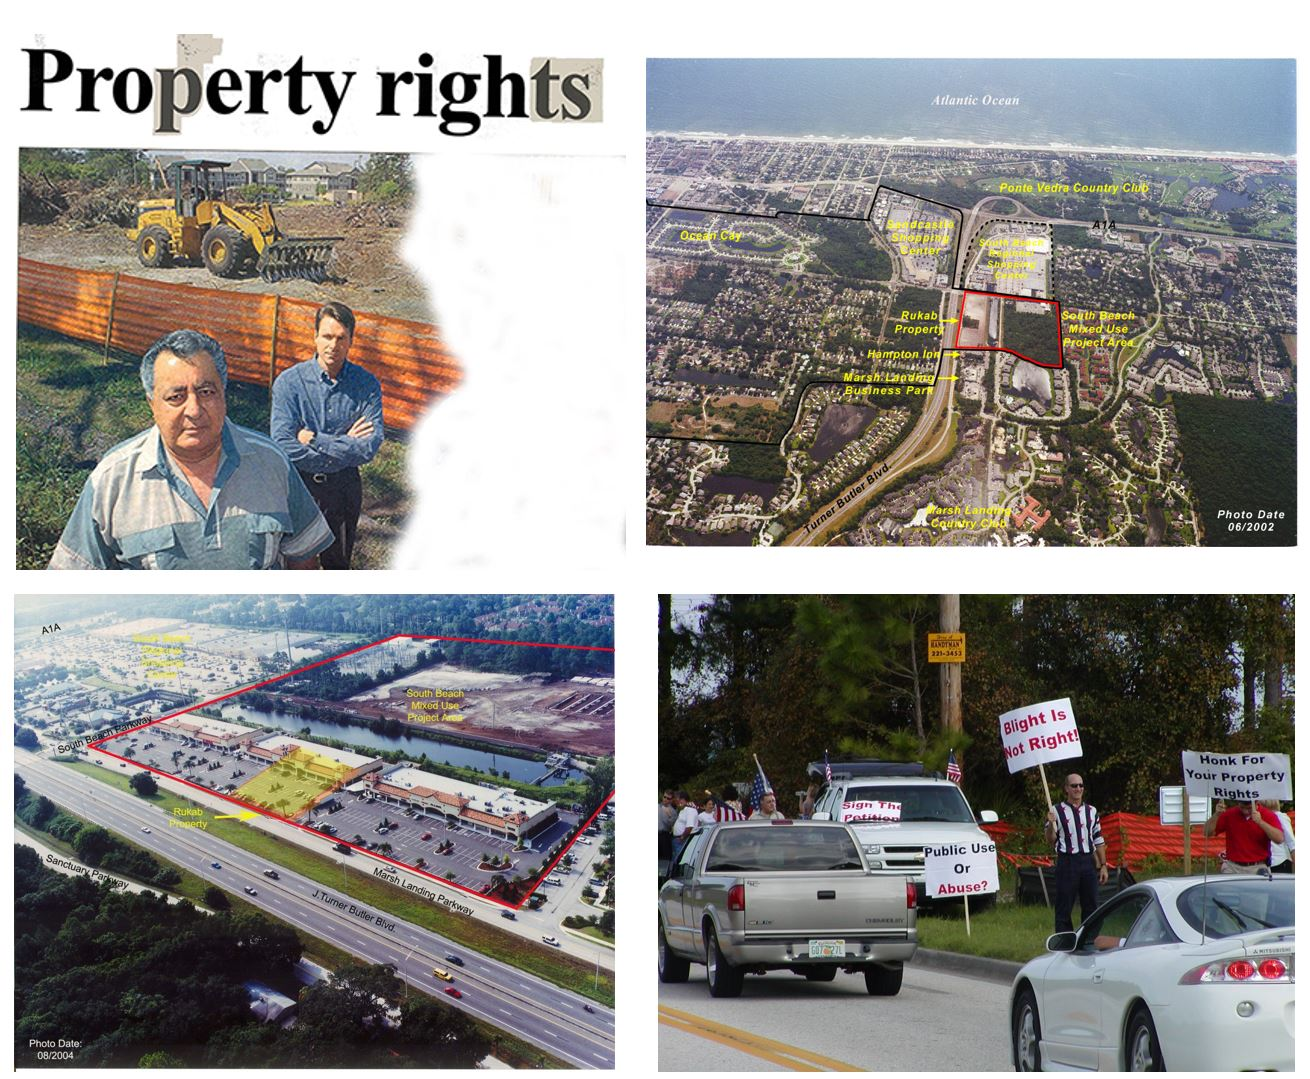 City of Jacksonville Beach Community Redevelopment: Owners Tony and Aida Rukab (Duval County, FL)